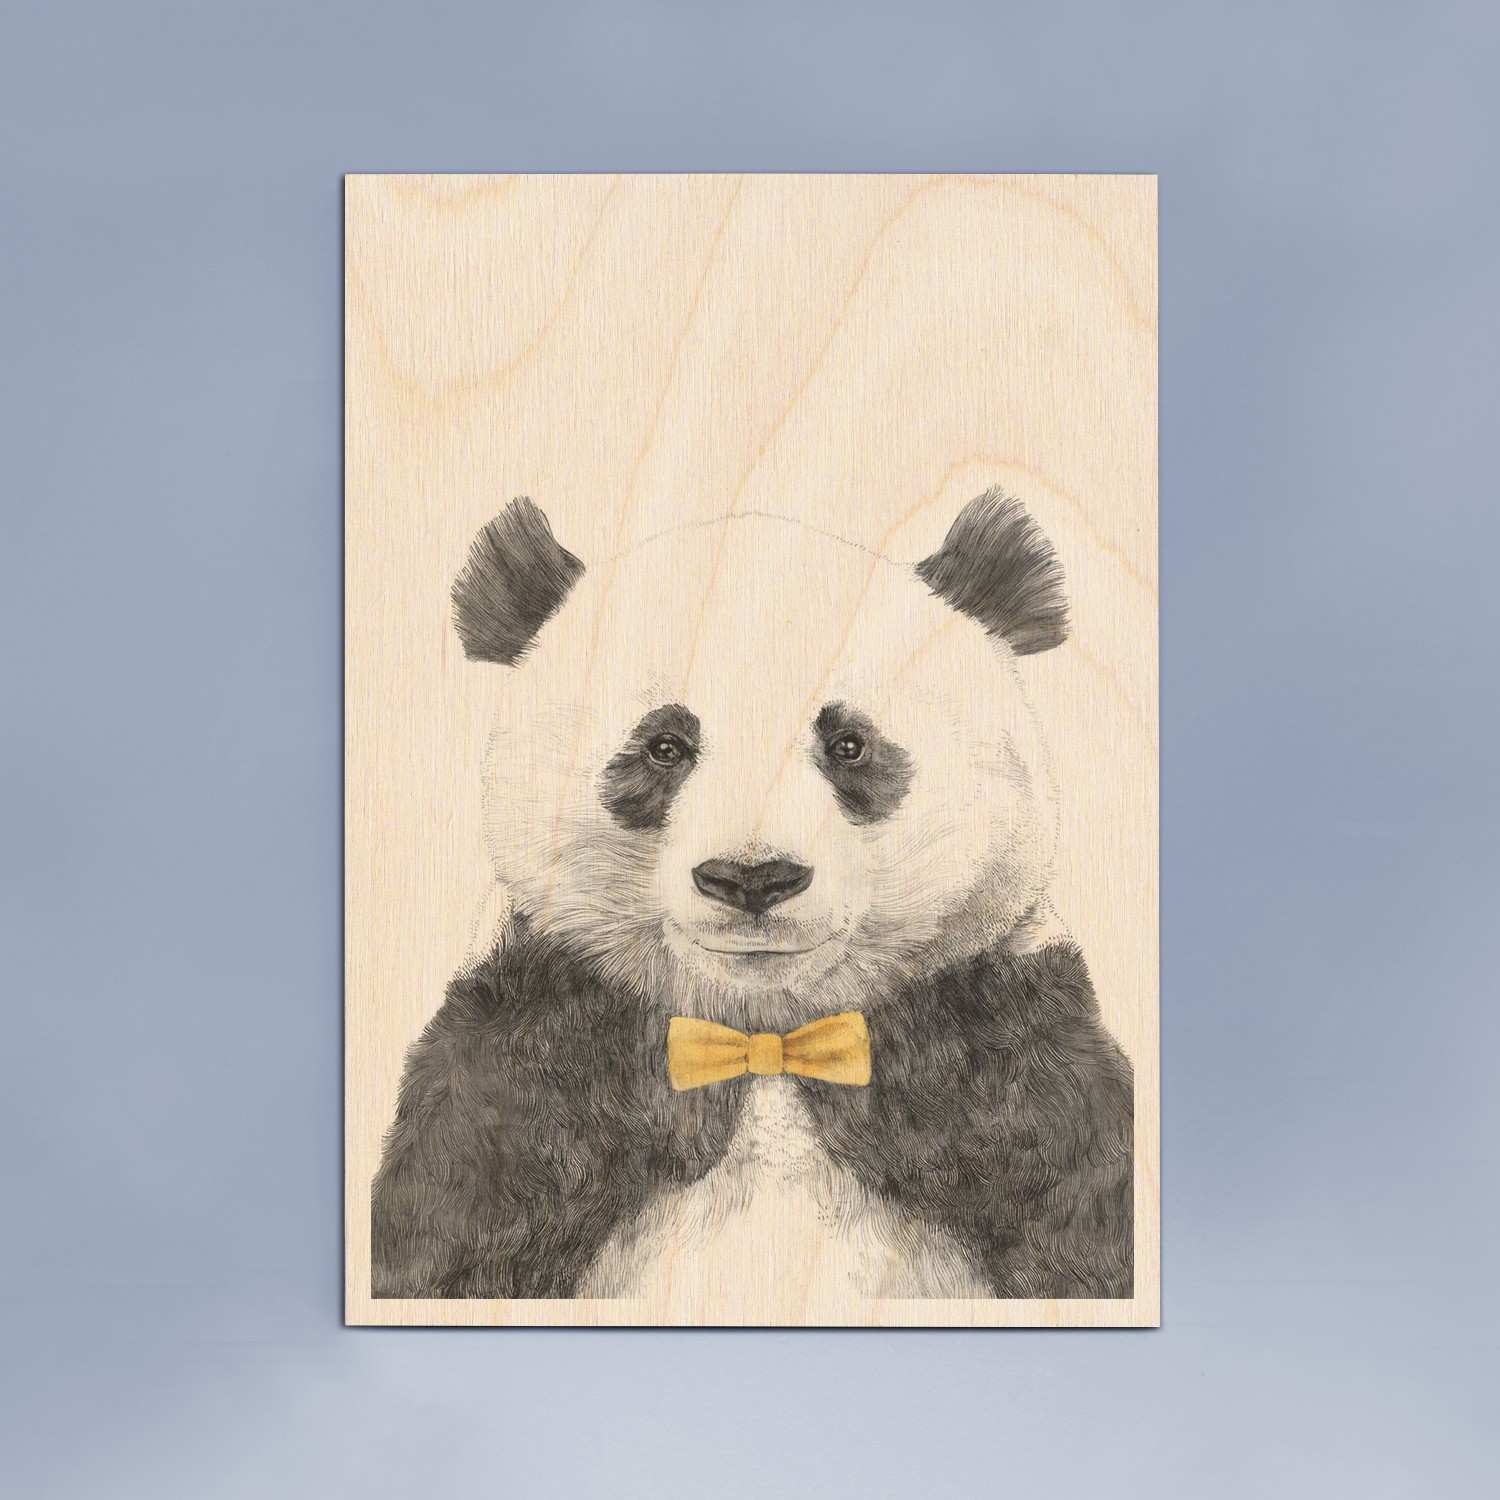 Panda Bow Tie Wooden Timbergram Wall Art Wooden Postcards and Gifts